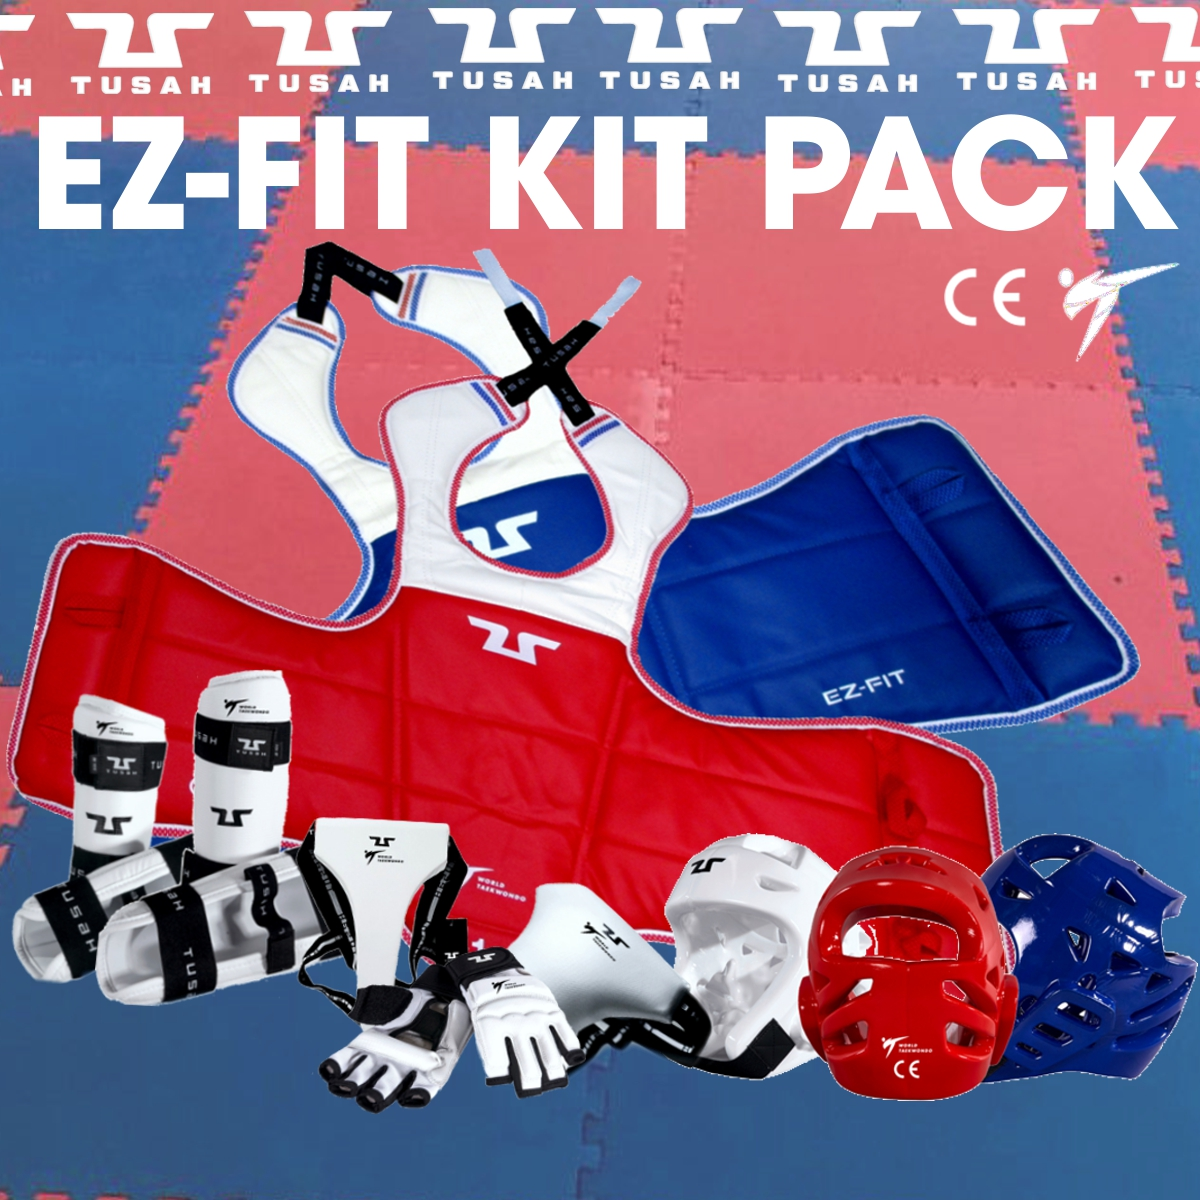 EZ-FIT TAEKWONDO KIT PACK